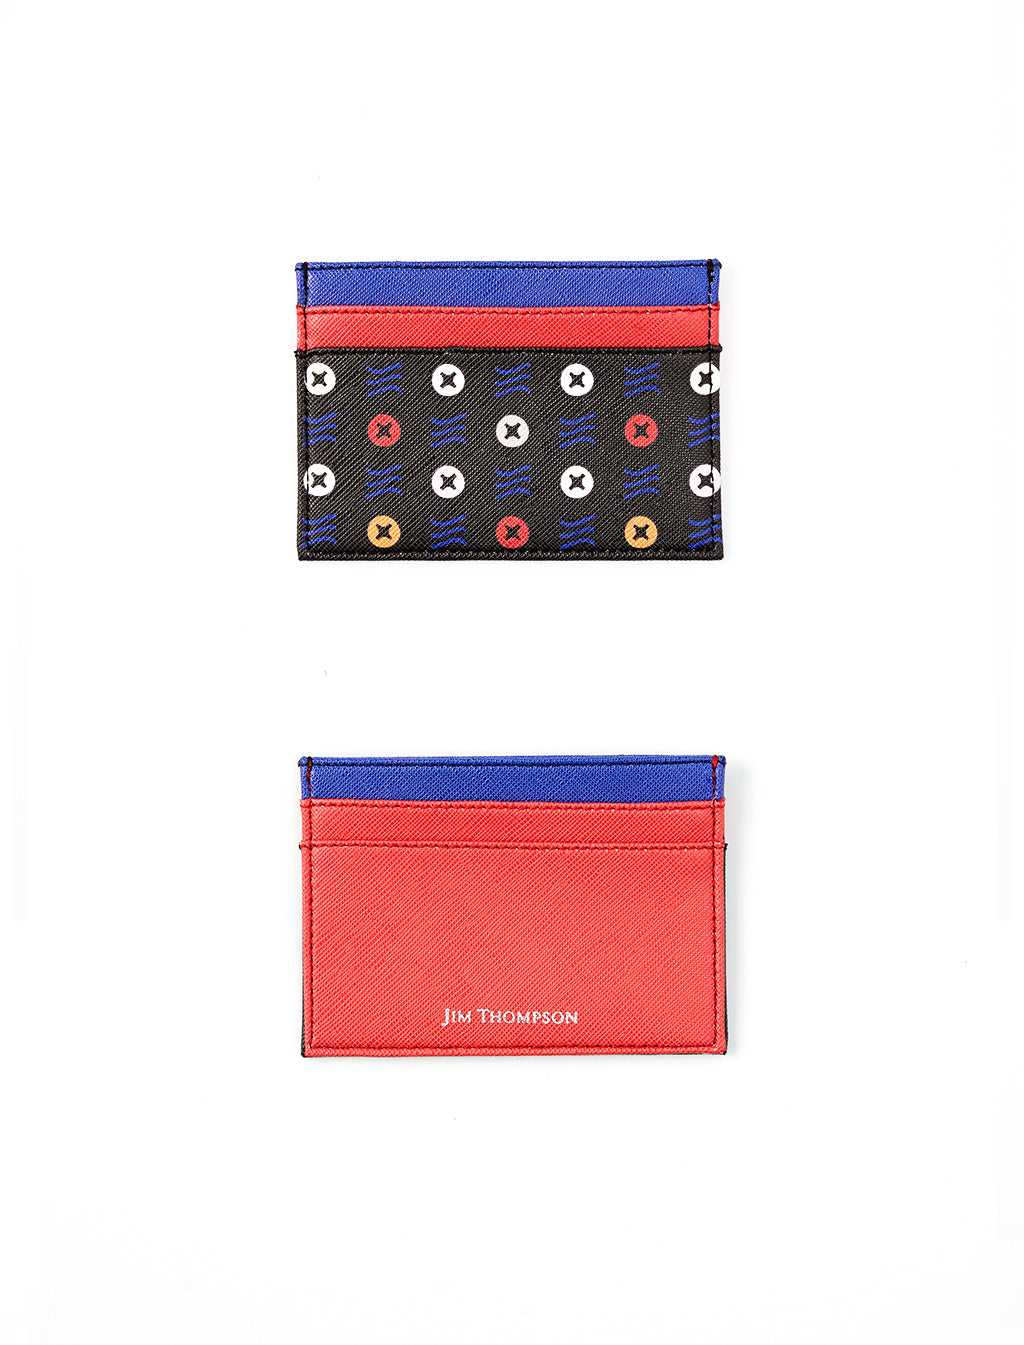 PRINTED LISA KING X JIM THOMPSON X SIWILAI CREDIT CARD HOLDER